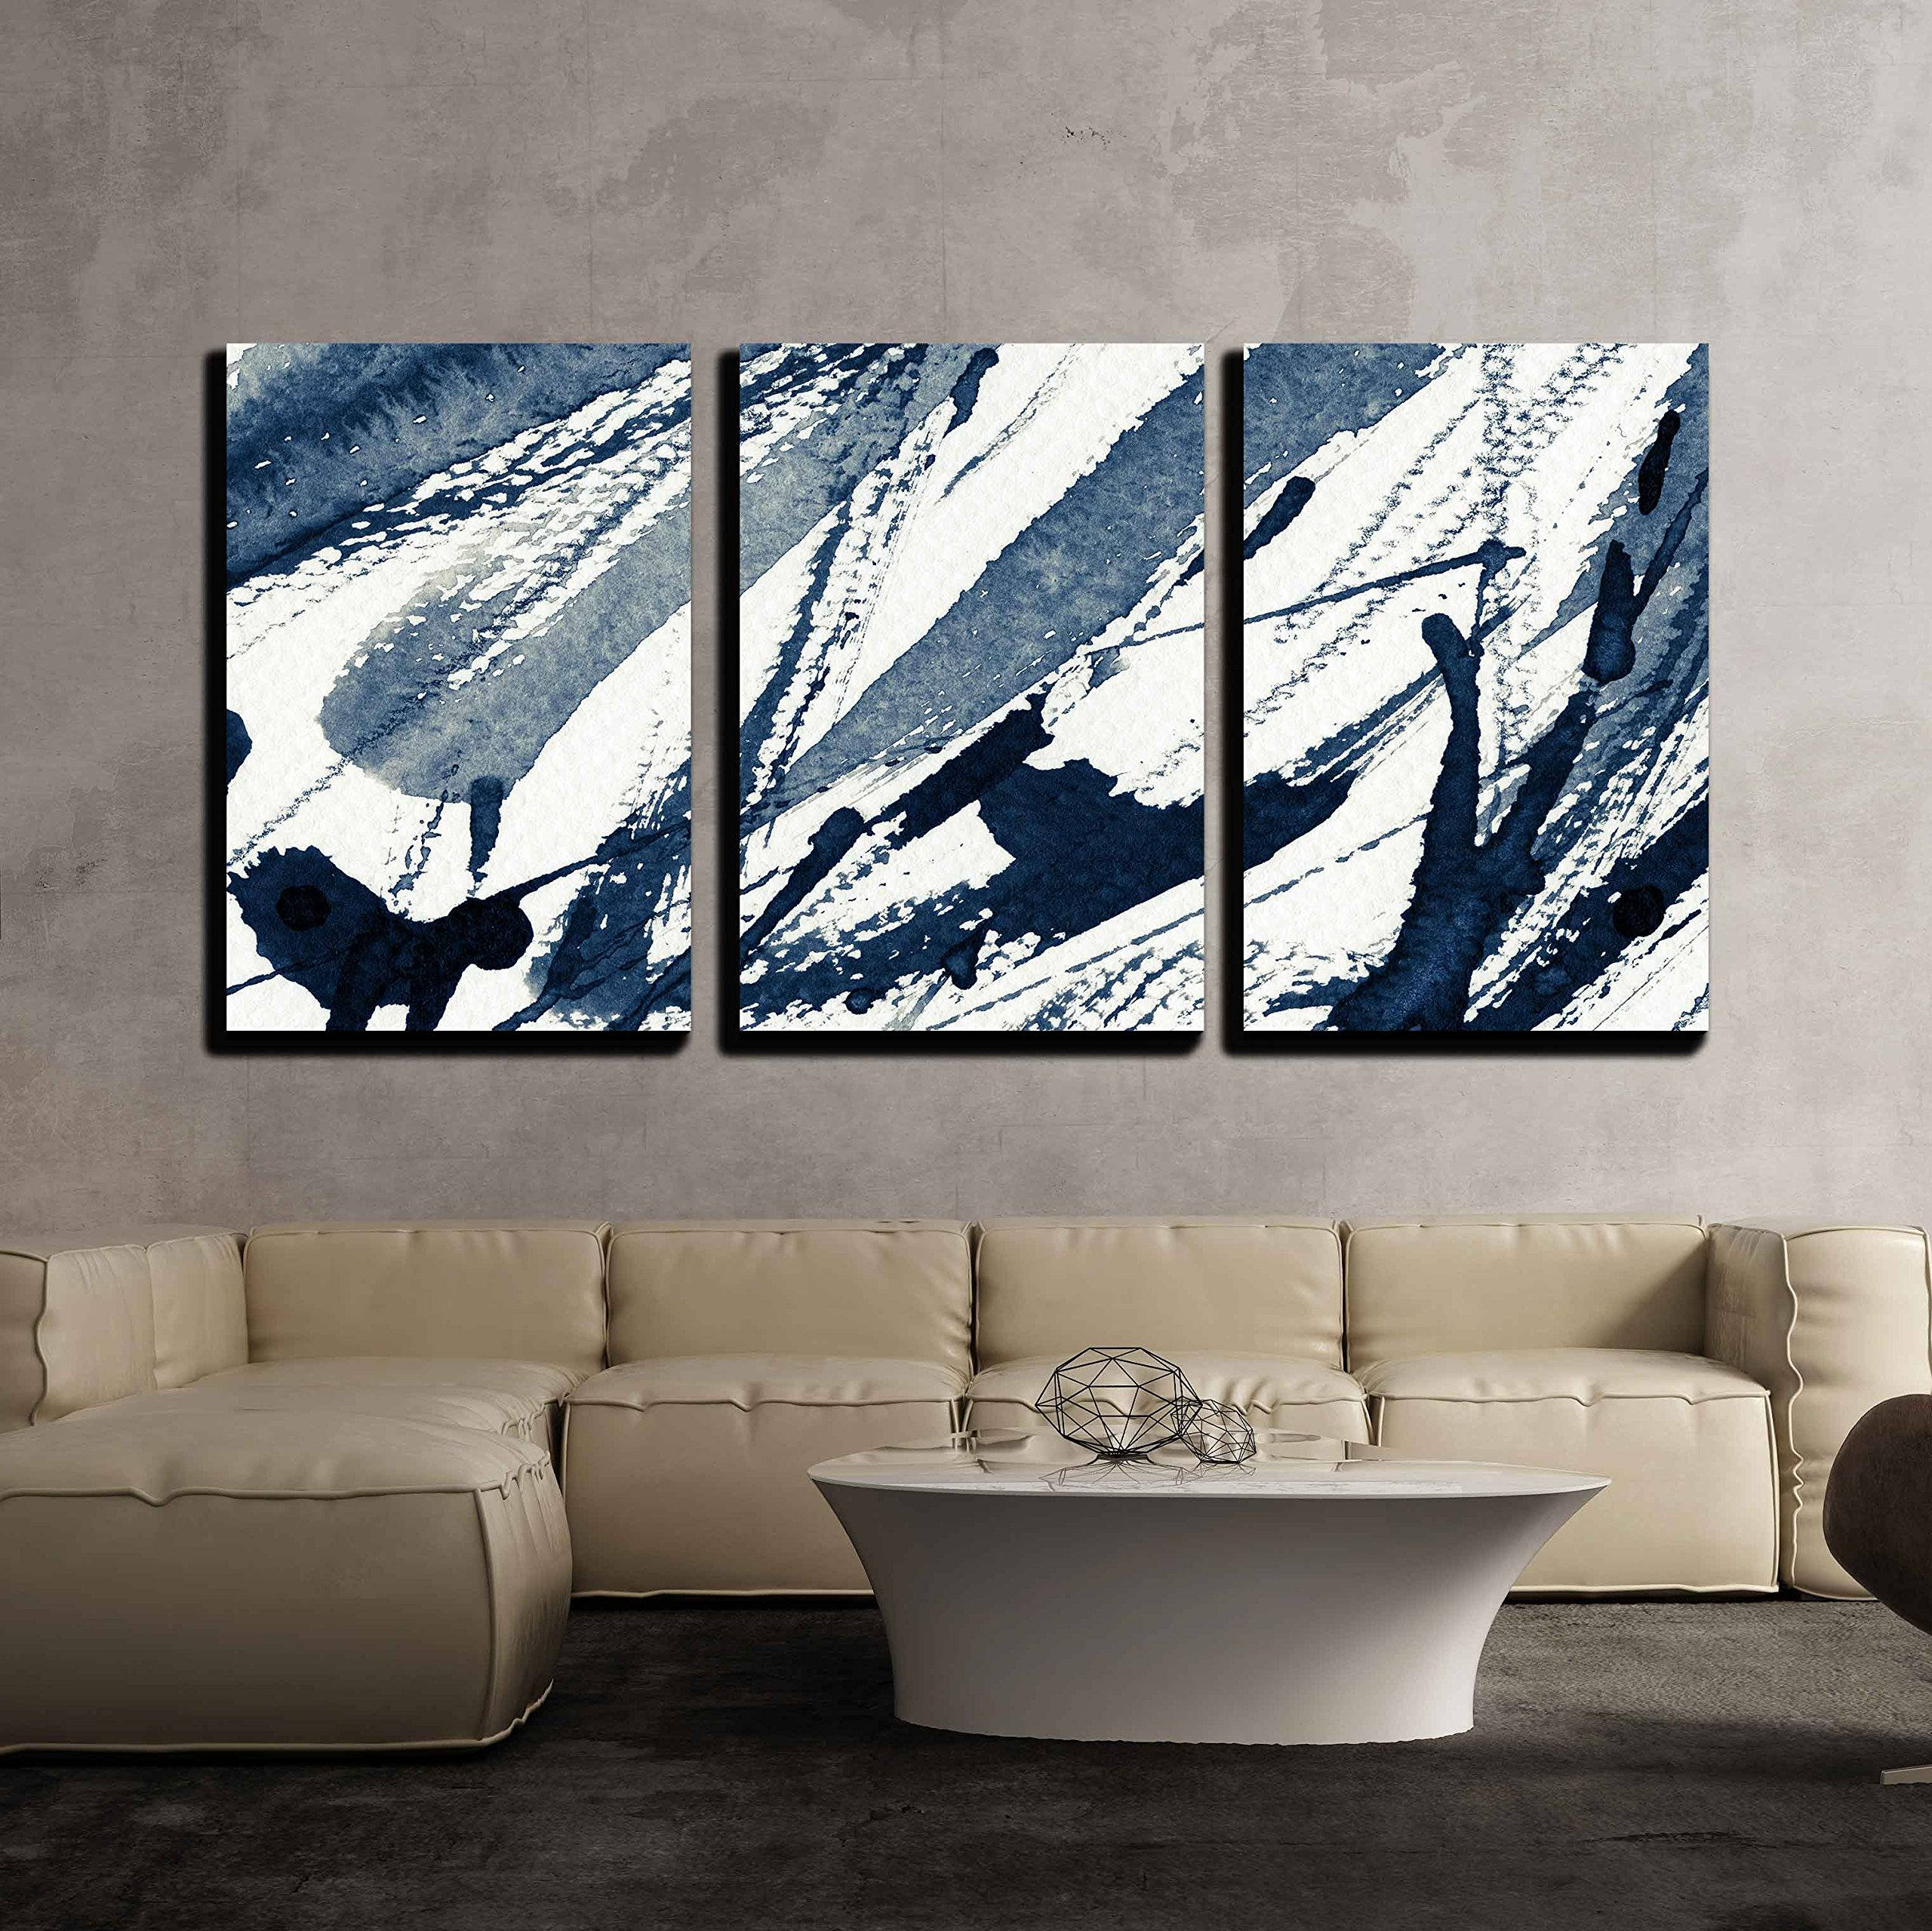 wall26 - 3 Piece Canvas Wall Art - Abstract Grunge Background, Ink Texture. - Modern Home Decor Stretched and Framed Ready to Hang - 24''x36''x3 Panels